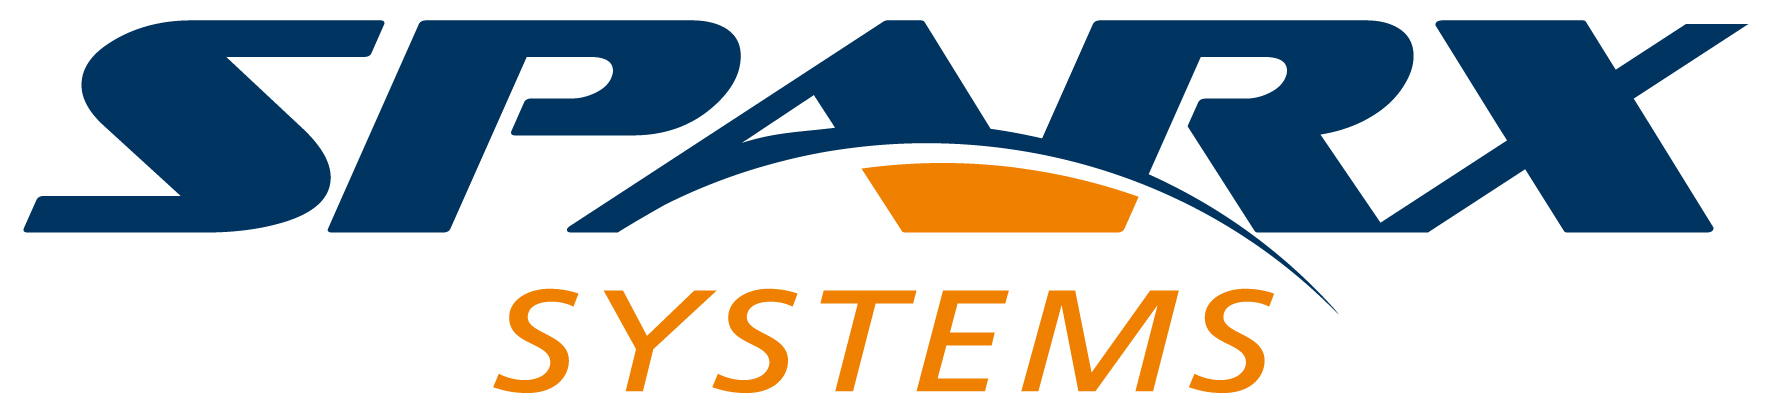 Logo Sparx Systems - Silver Sponsor of ICWE 2012